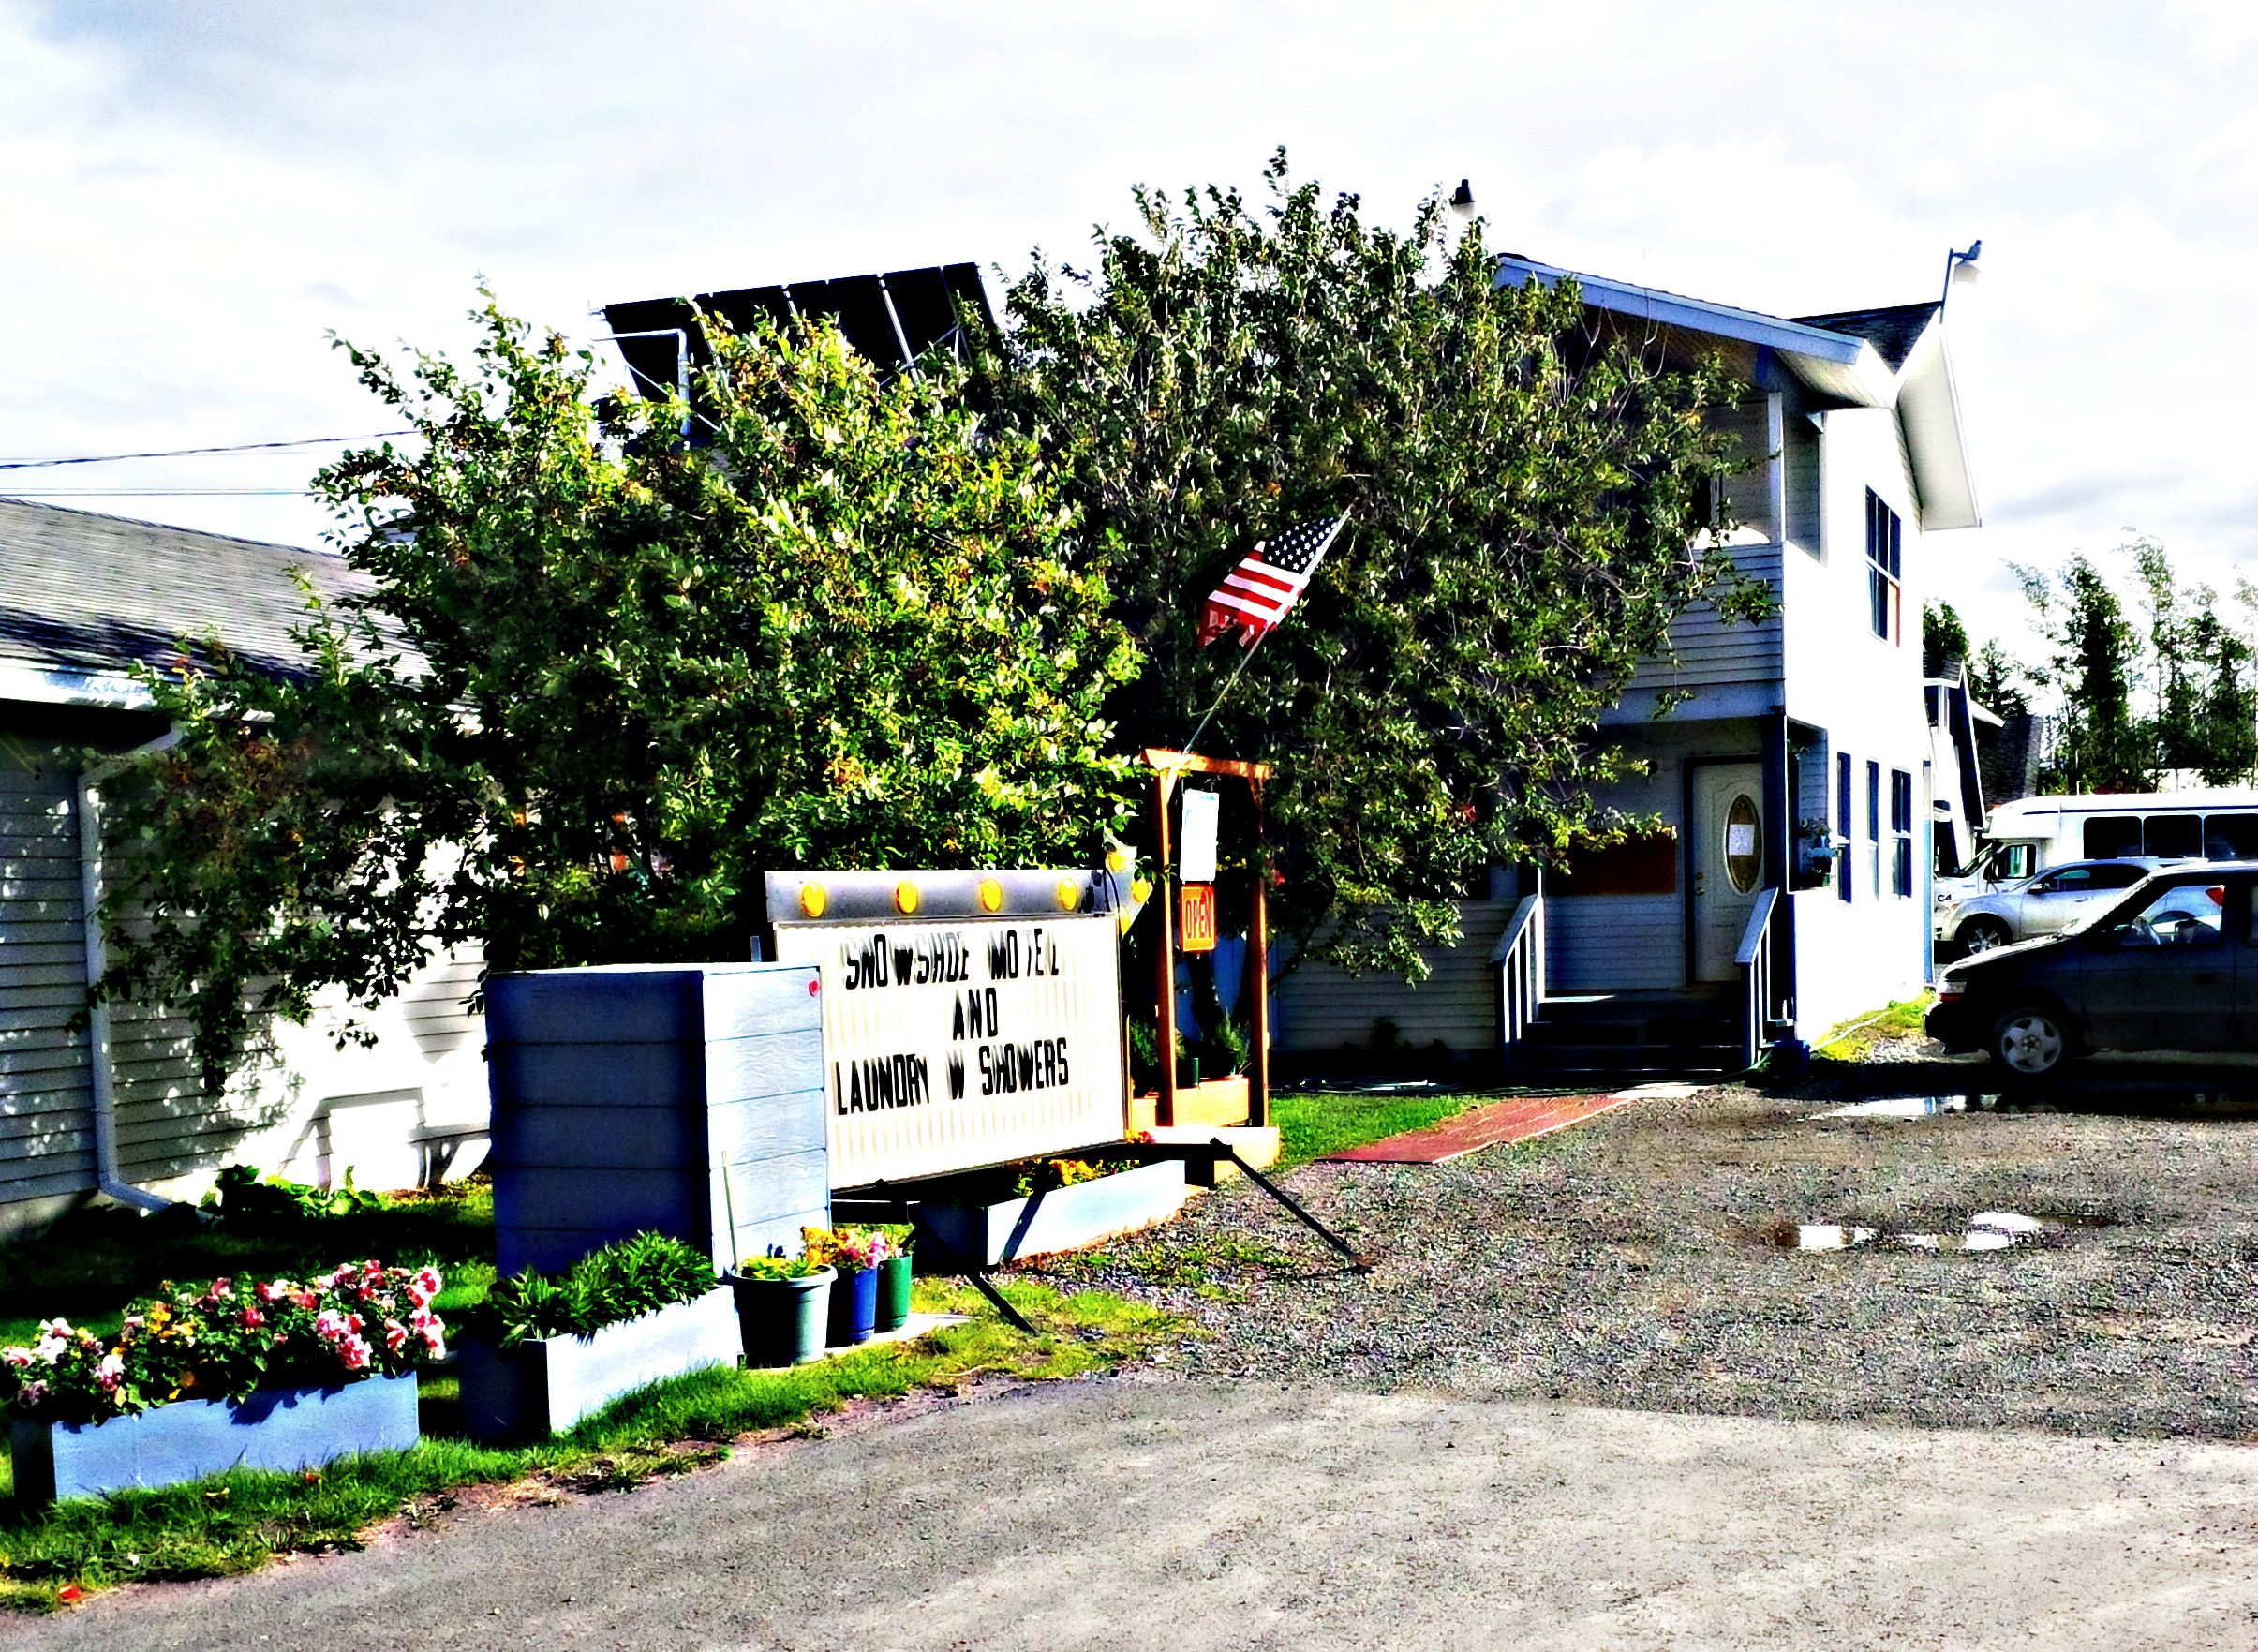 Snowshoe Laundromat - Laundry Services Available in Tok Alaska